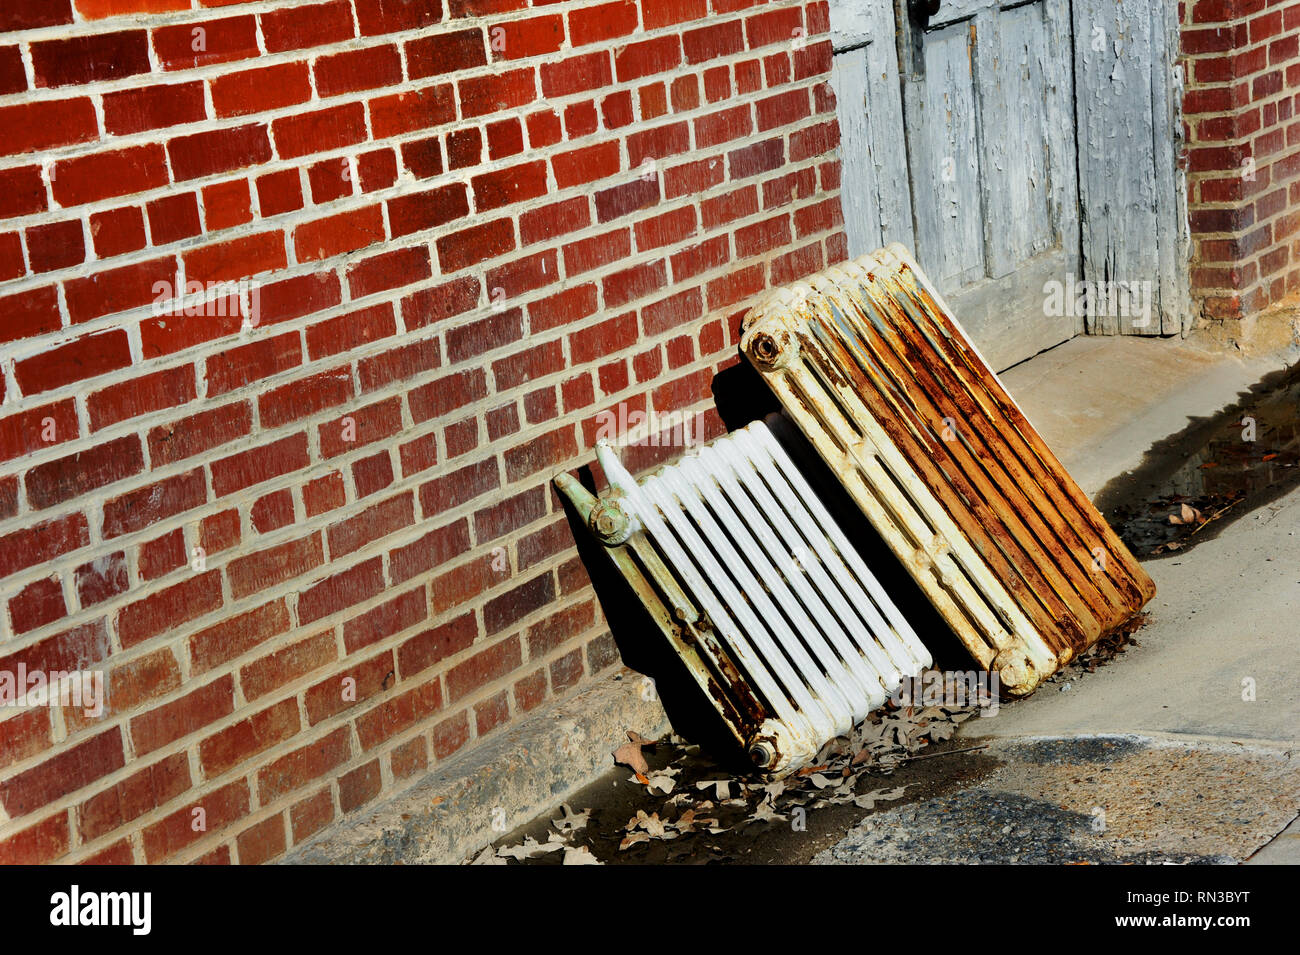 Old iron radiant heaters lay discarded against brick wall.  Heaters are being replaced by more up-to-date heating options. - Stock Image